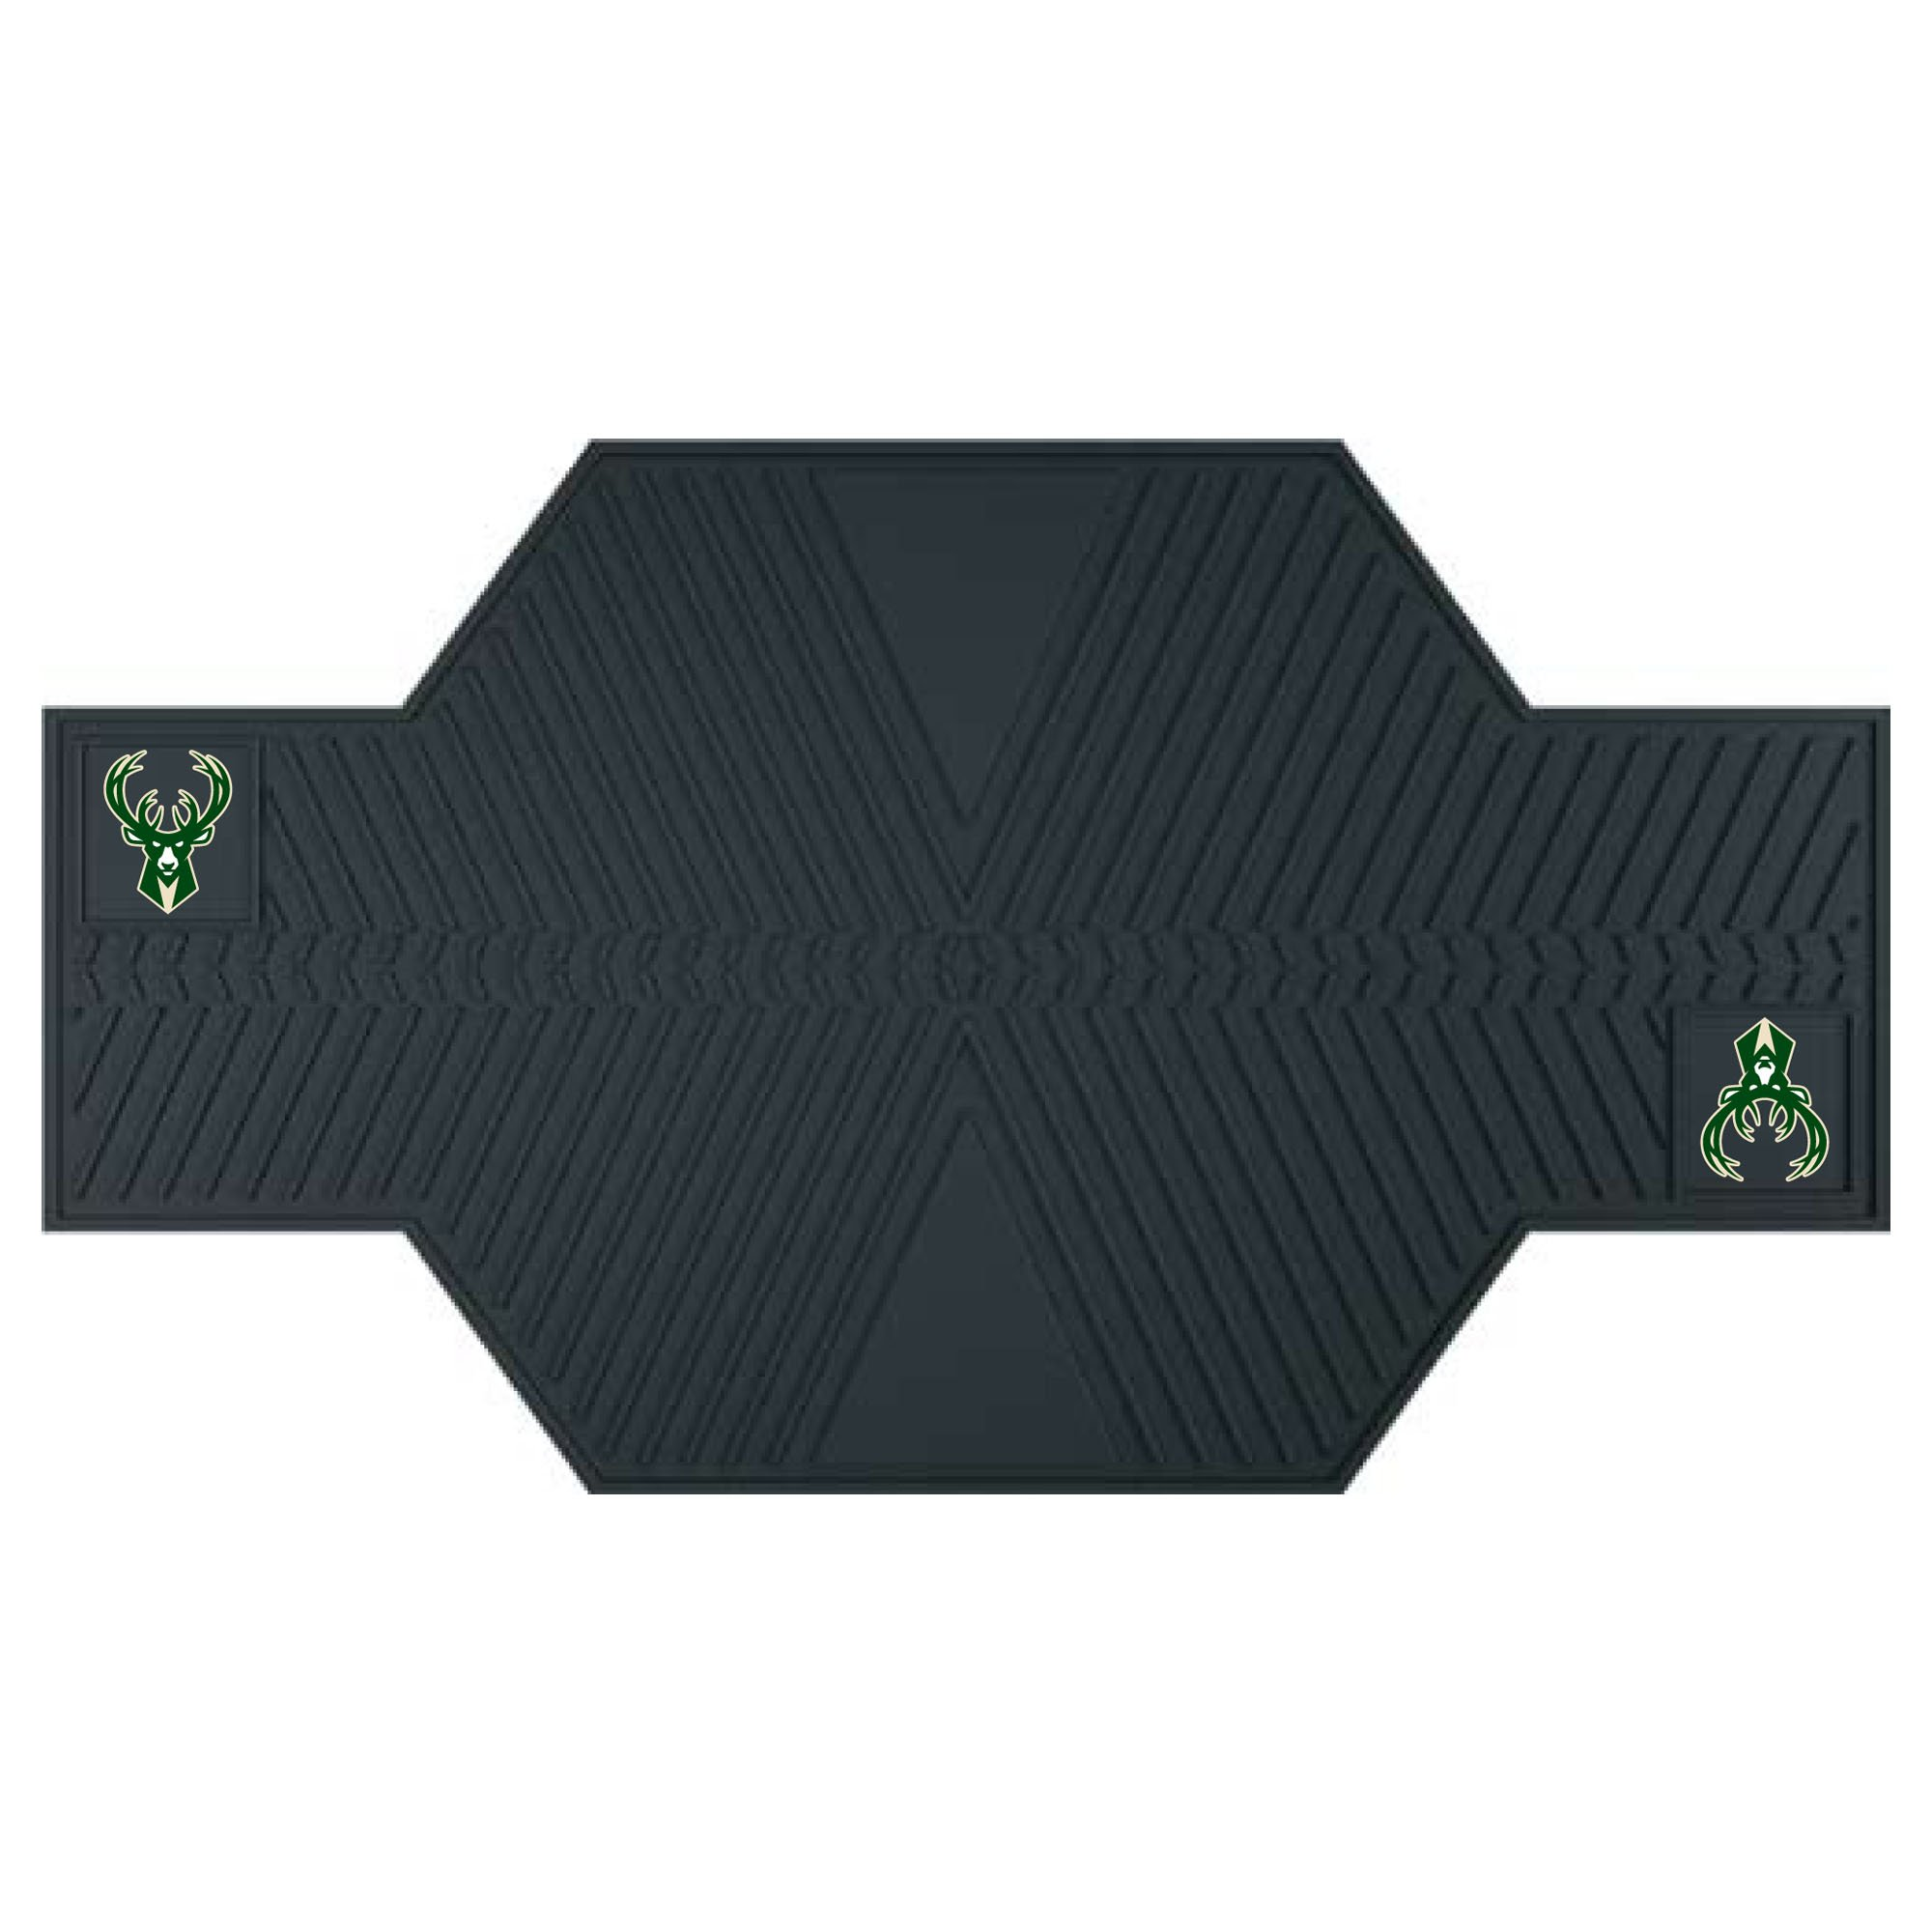 FANMATS 15384 NBA Milwaukee Bucks Motorcycle Mat